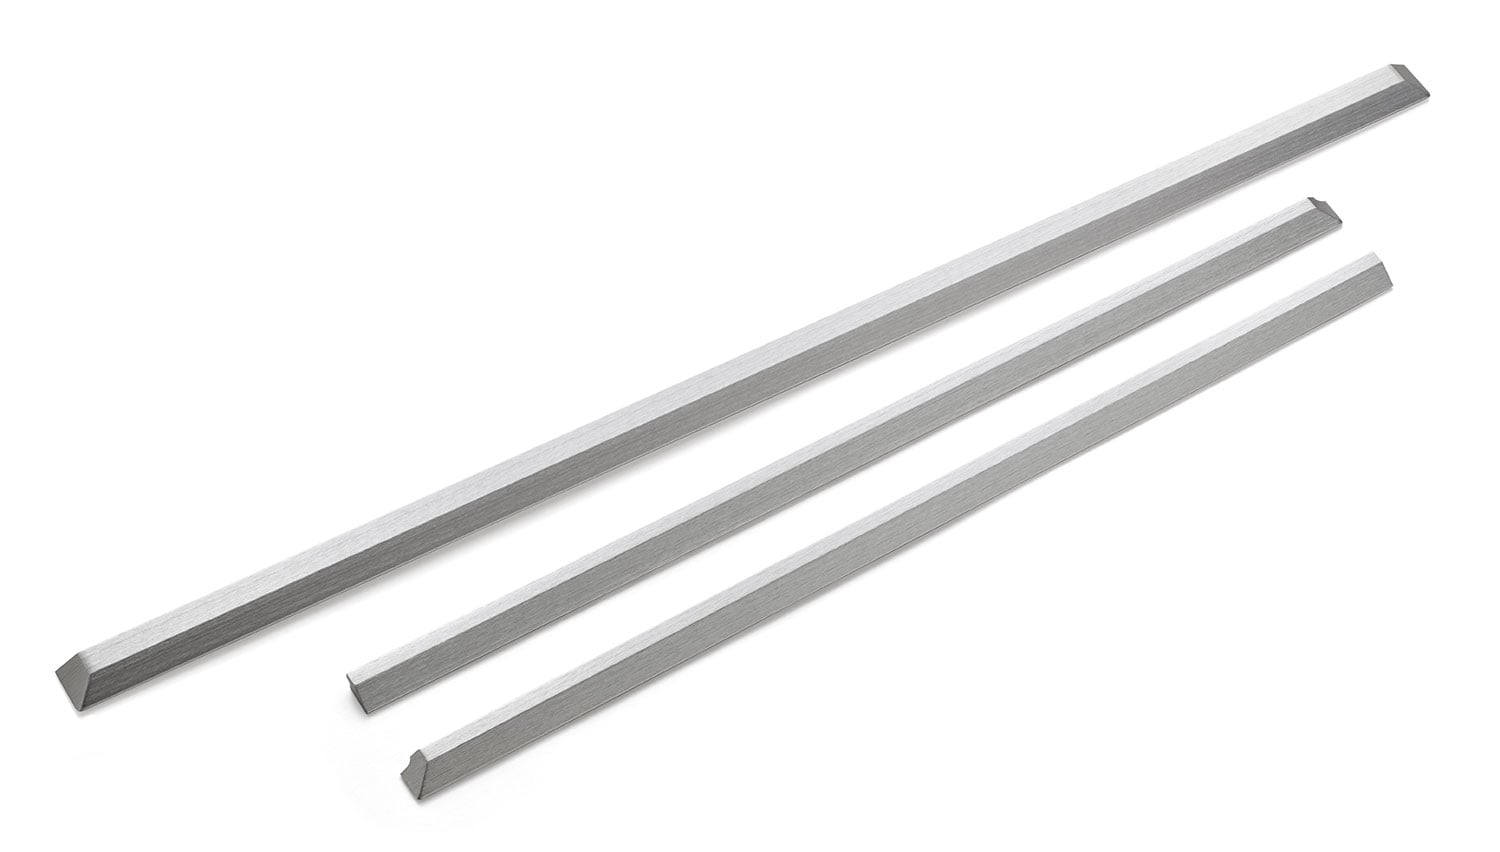 Whirlpool Stainless Steel Range Trim Kit - W10675028